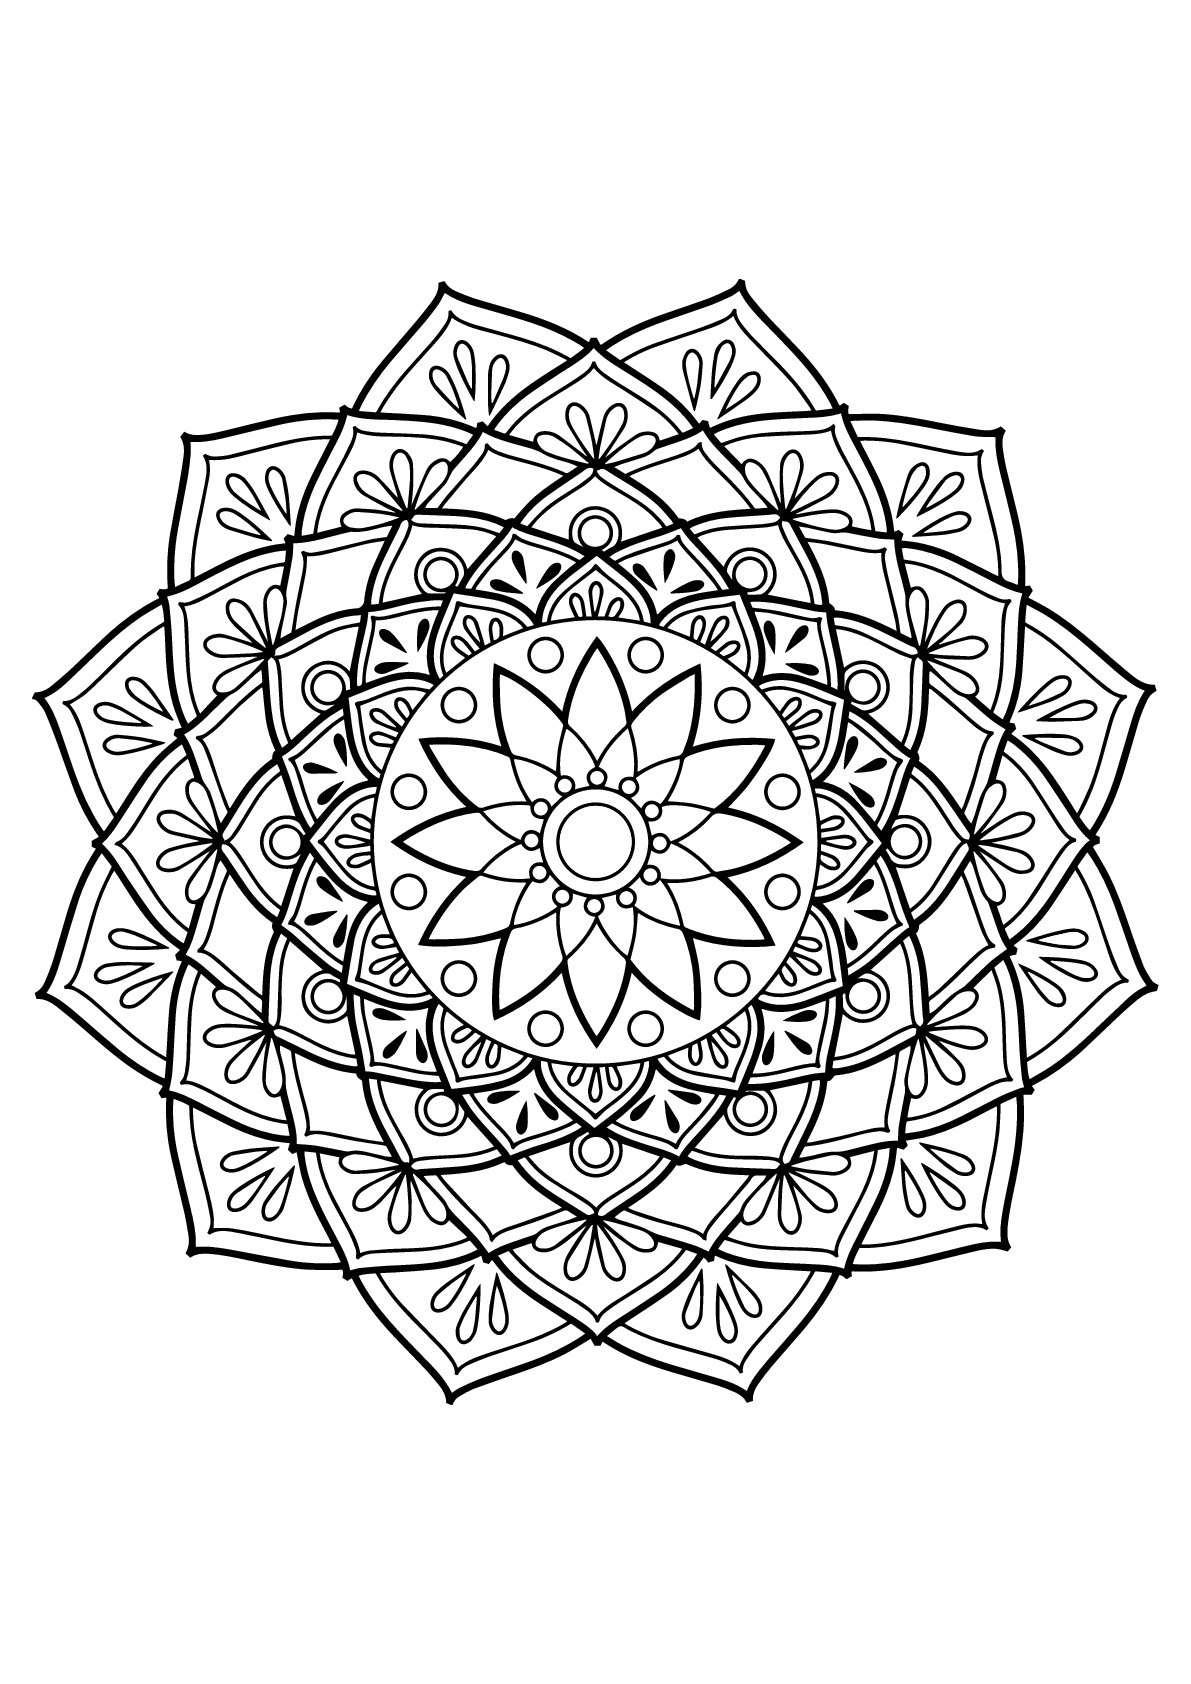 free printable mandalas for adults free printable mandala coloring book pages for adults and kids printable mandalas for adults free